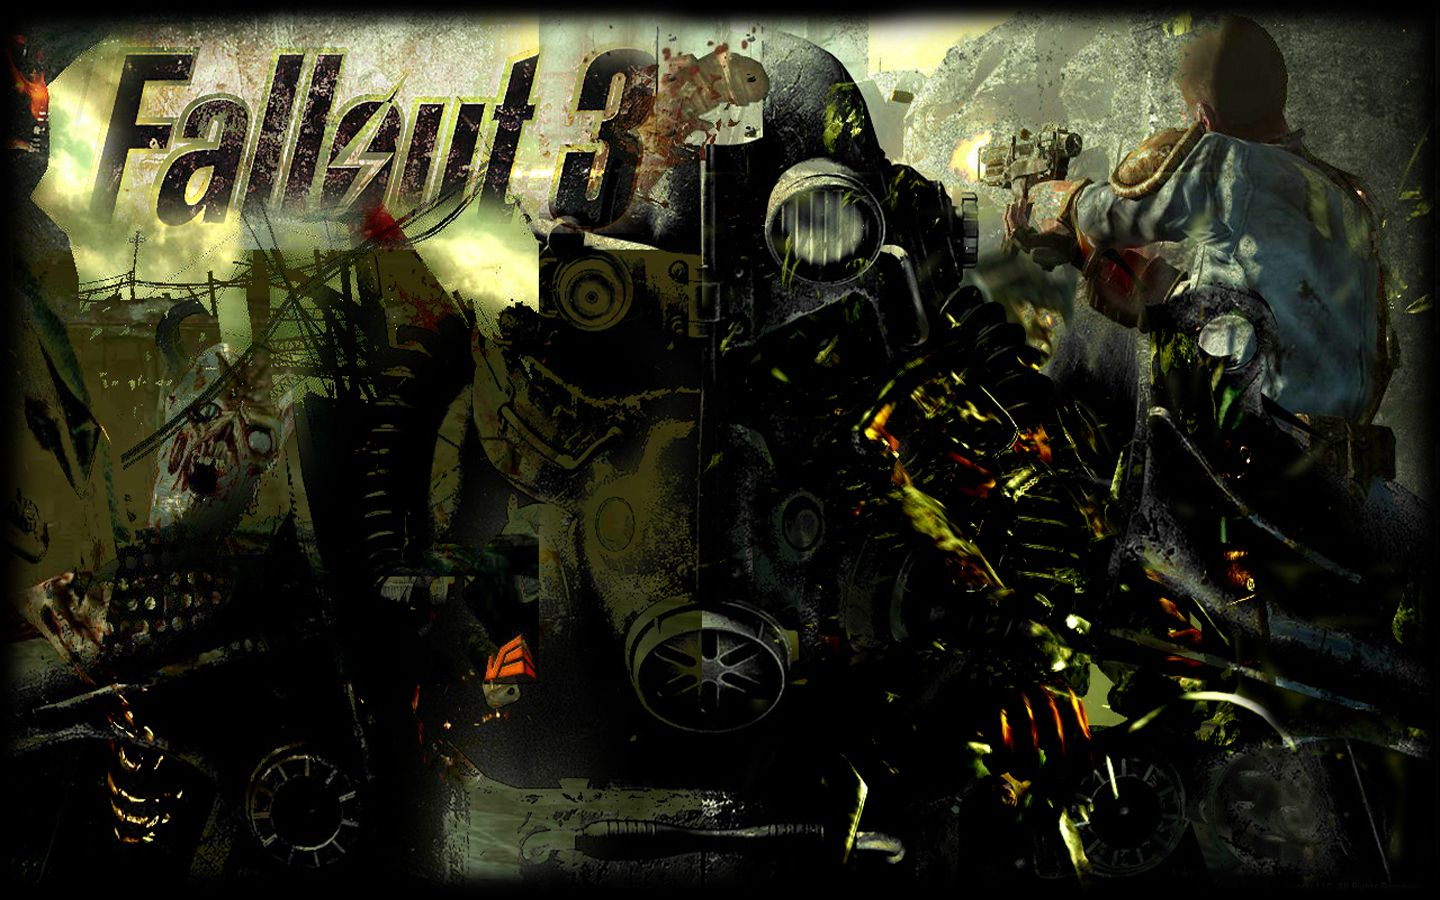 Fallout 3 Wallpaper 6353 Hd Wallpapers in Games Imagescicom 1440x900